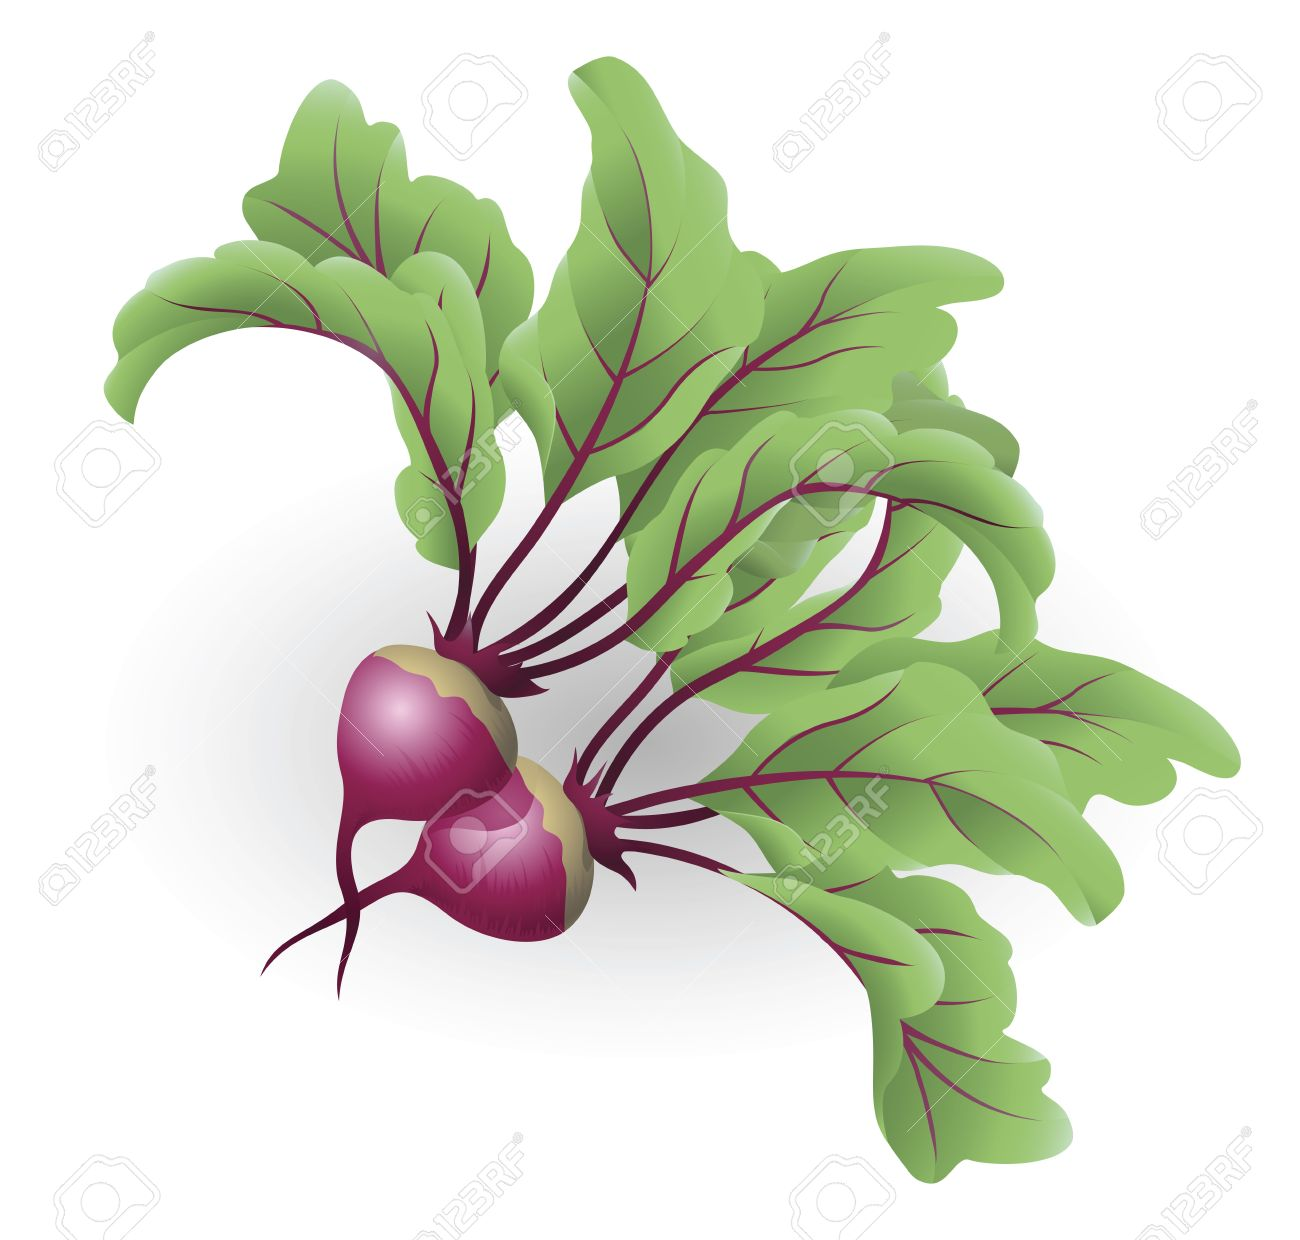 4,943 Beet Stock Vector Illustration And Royalty Free Beet Clipart.